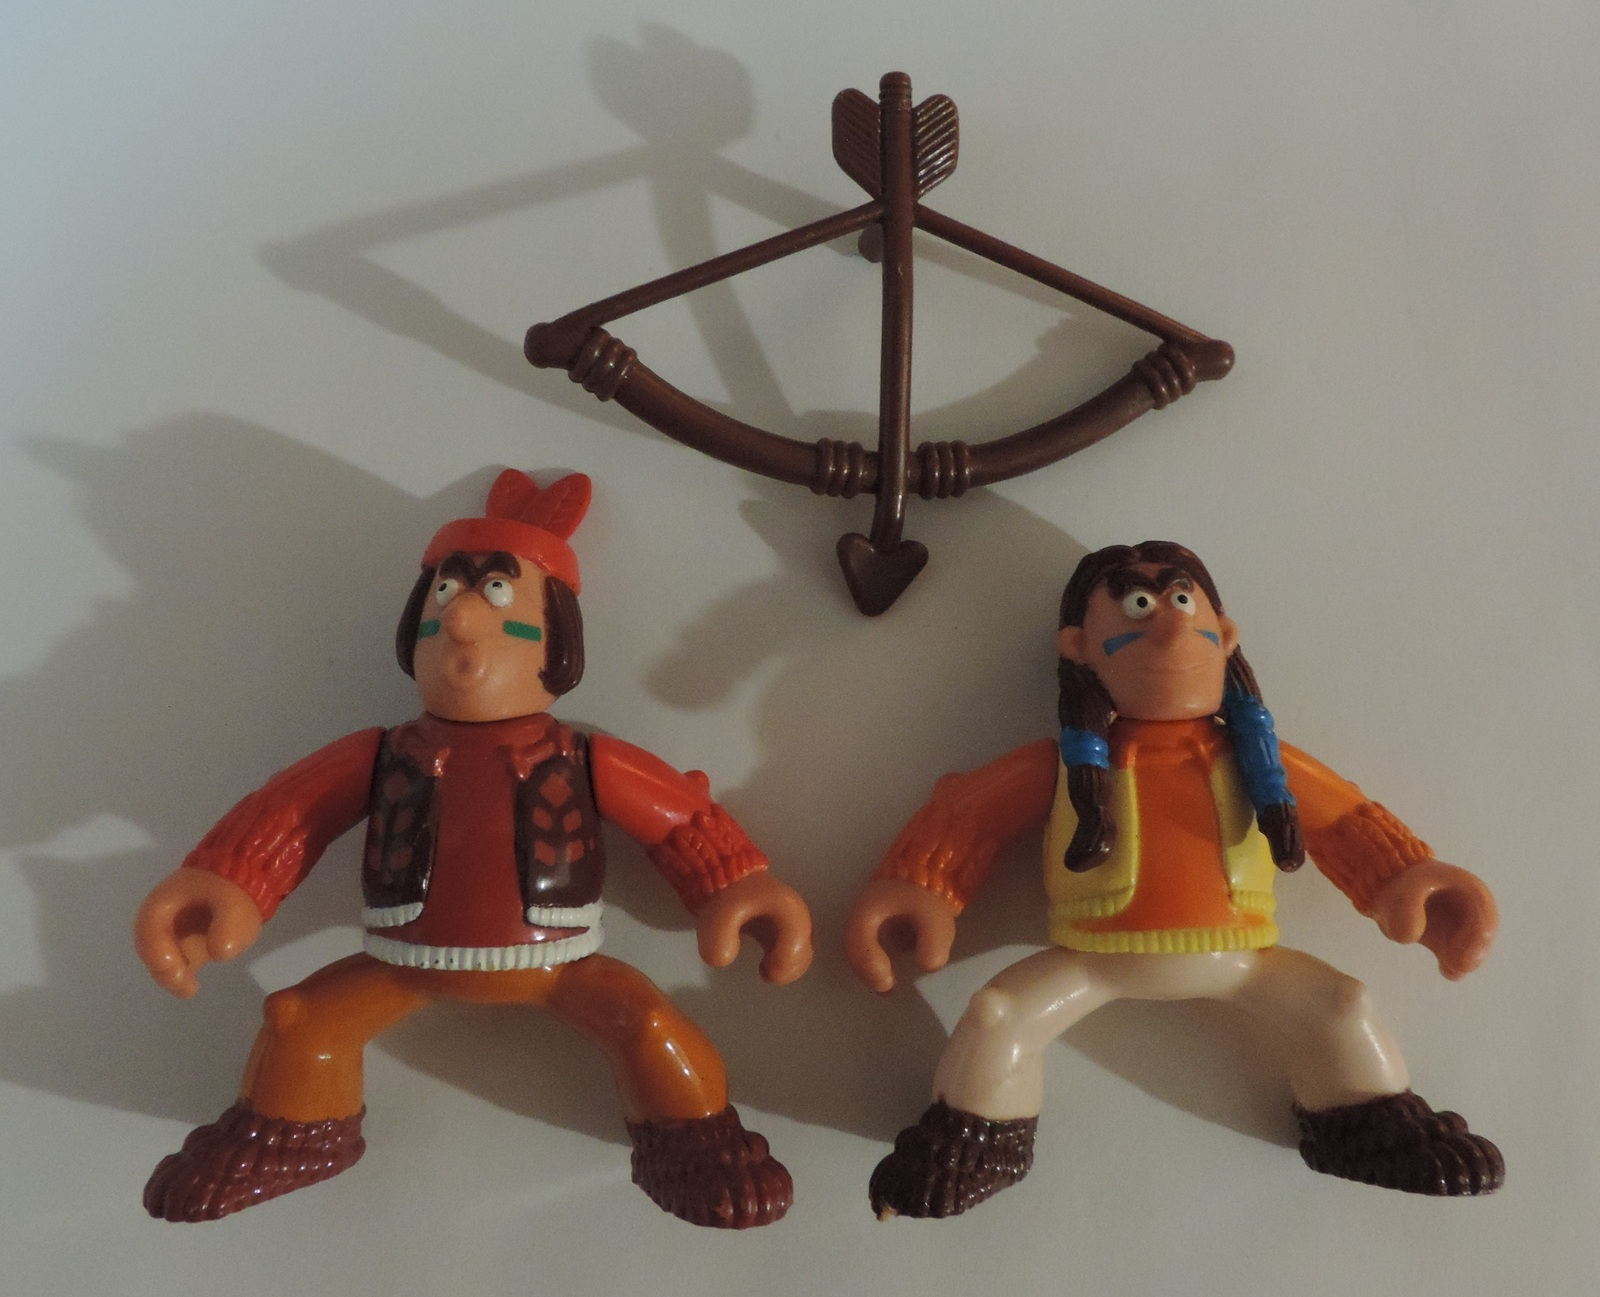 2 Fisher Price Great Adventure type American Indians toy action figures